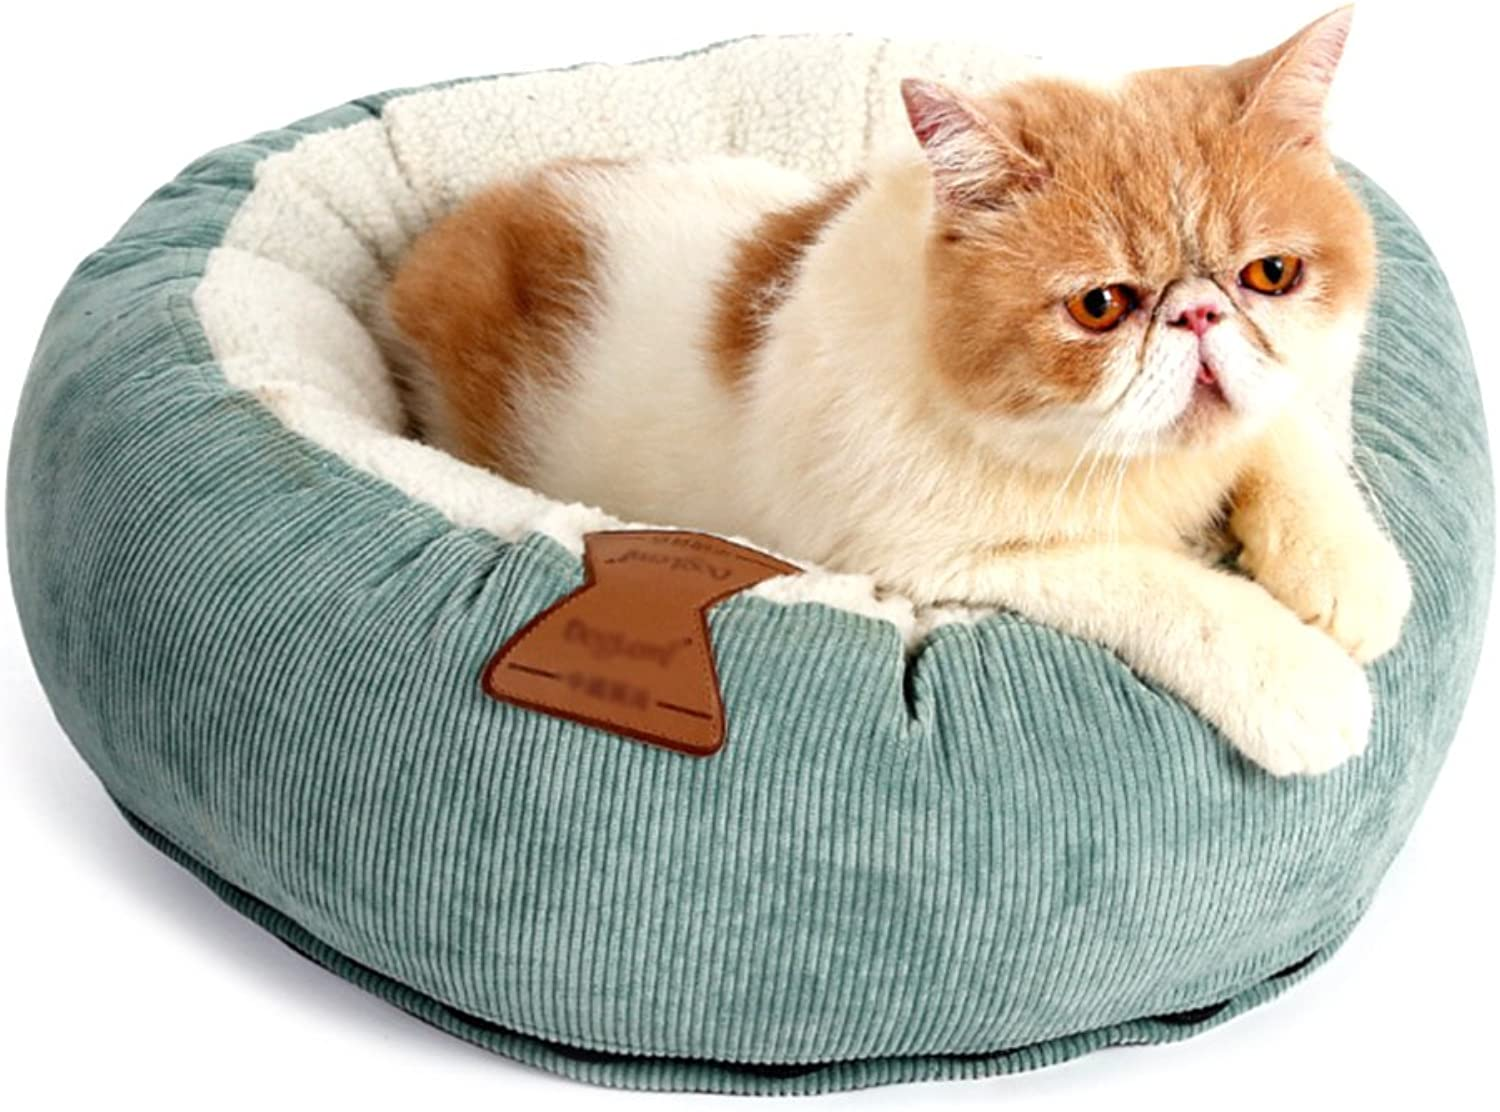 Cat Kennel Bed Pet Indoor Soft Bed Comfortable House Puppy Winter Warm Room Small Animal Litter Dog Home Round Donut Cushion Donut Accessories (Green)